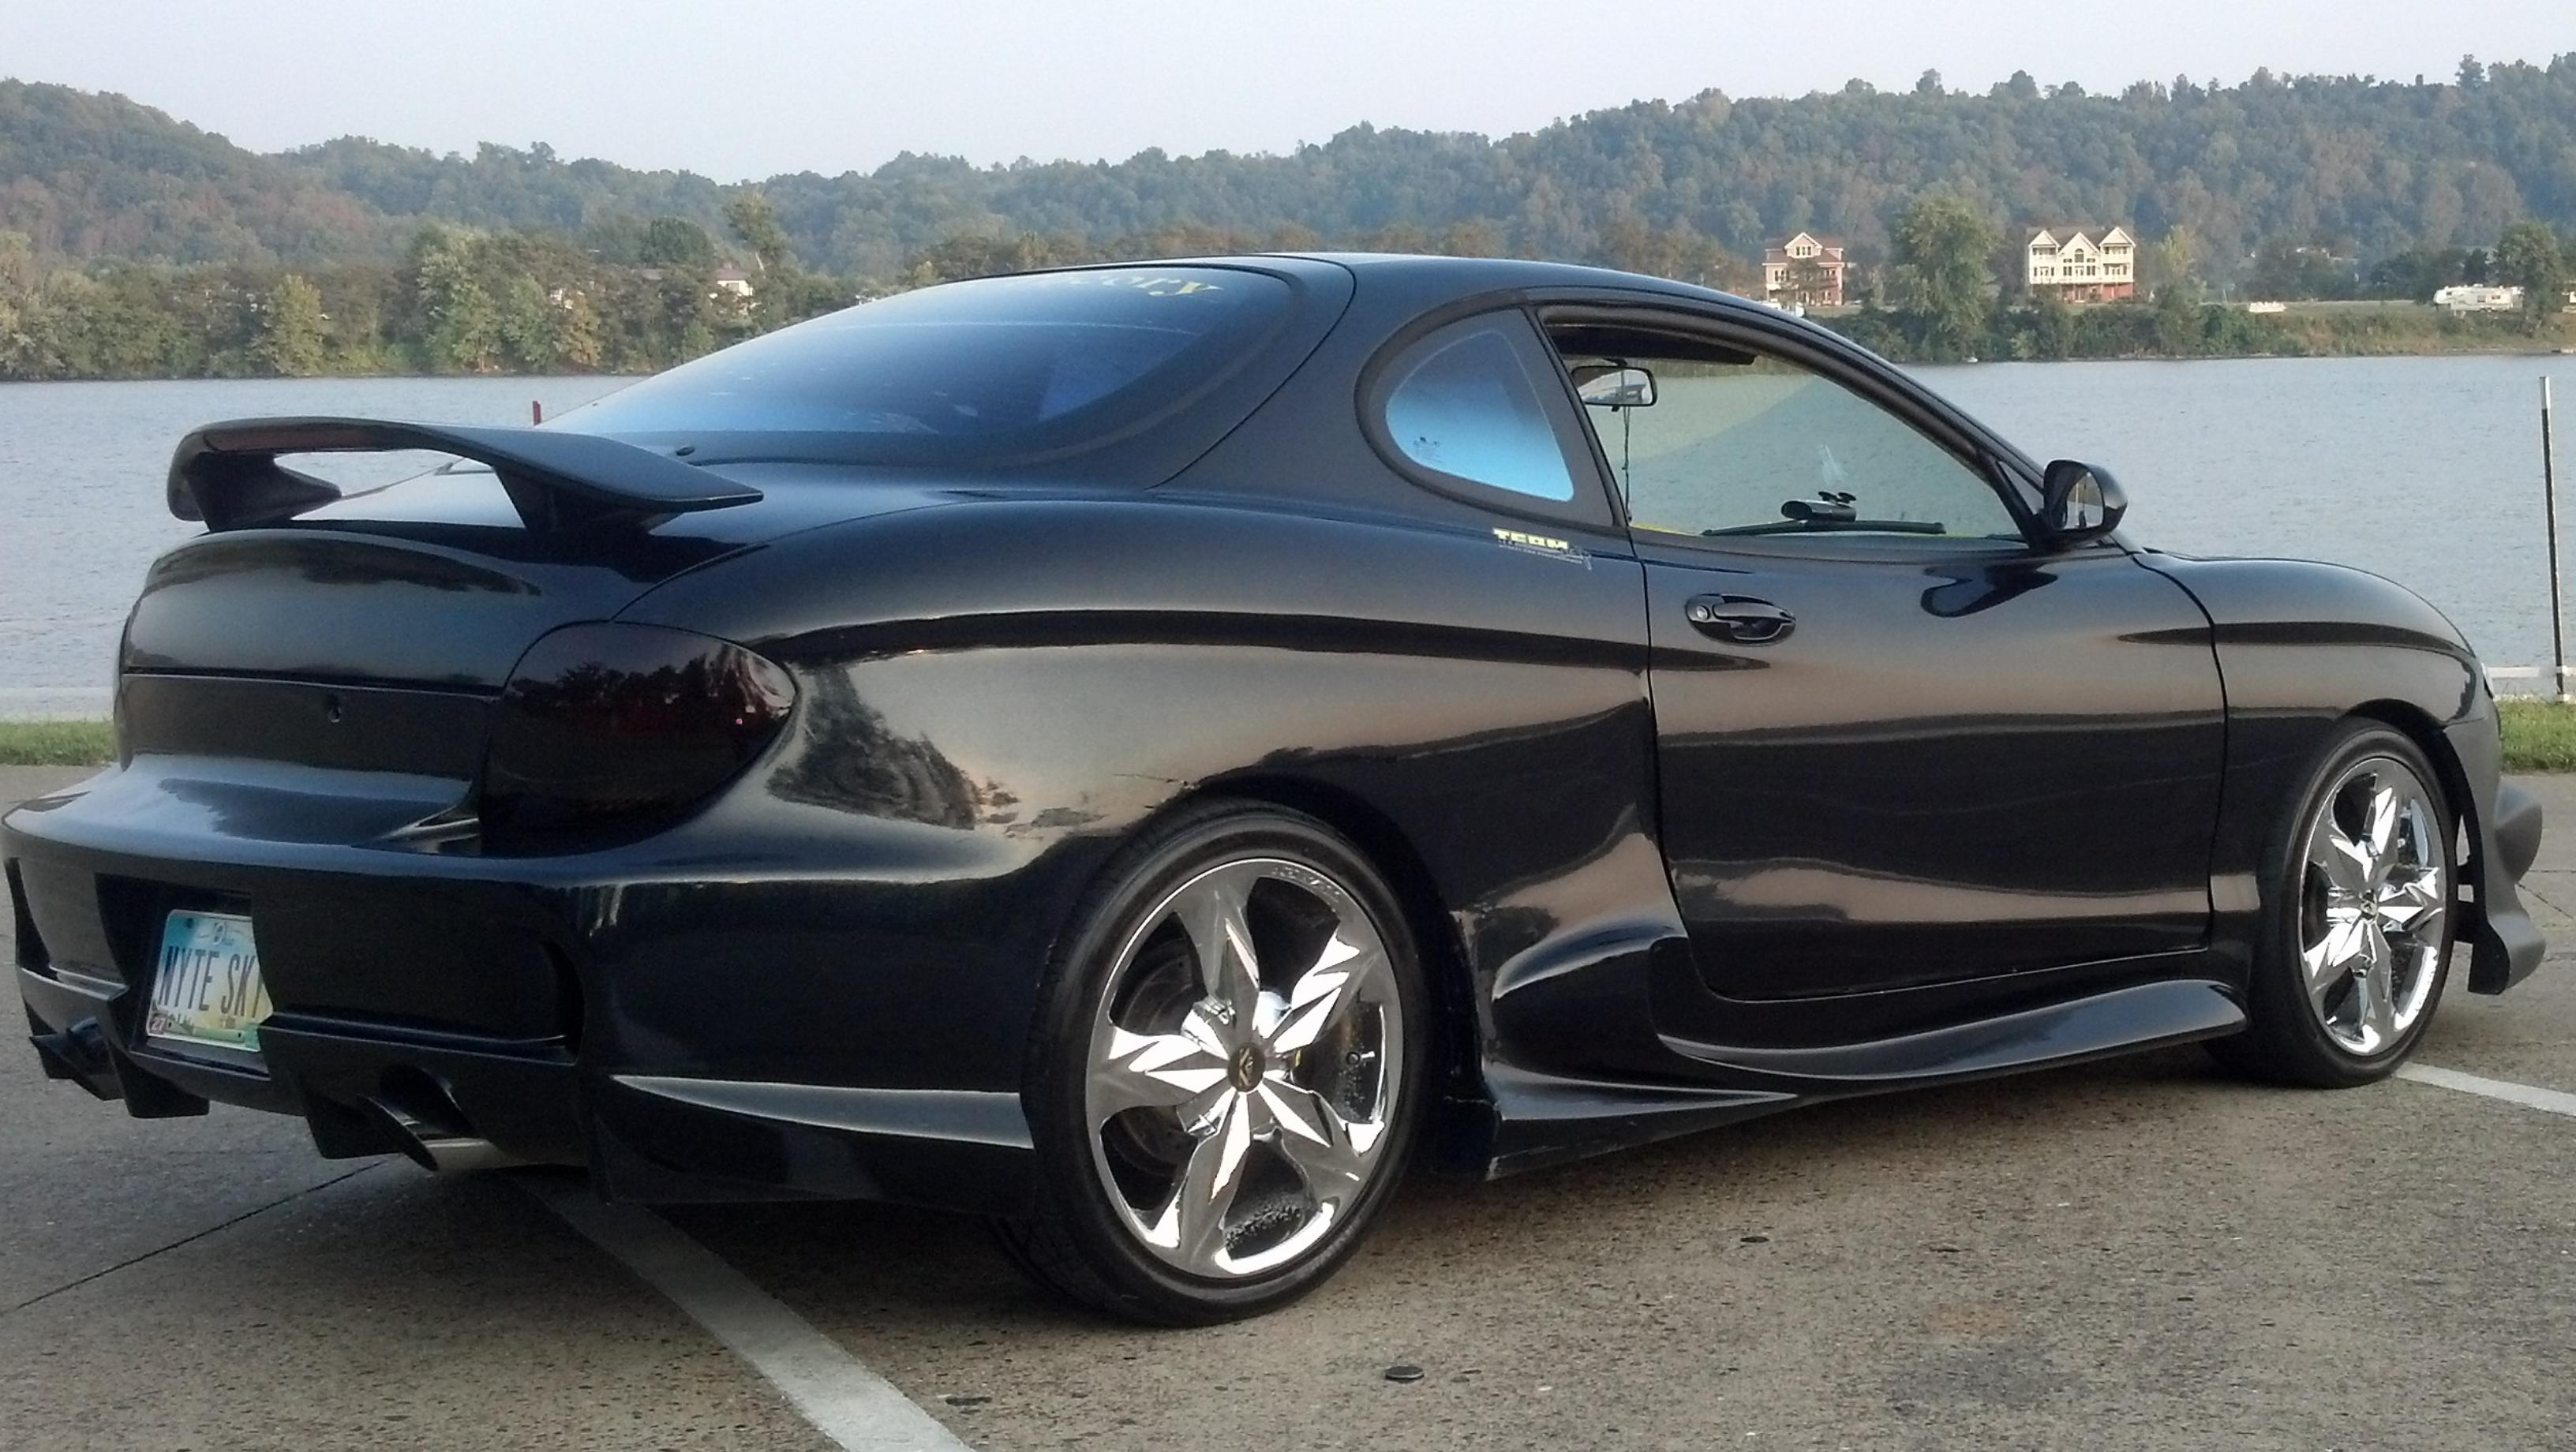 nytesky 2000 hyundai tiburon specs photos modification info at 2008 tiburon wiring diagram [ 3264 x 1840 Pixel ]